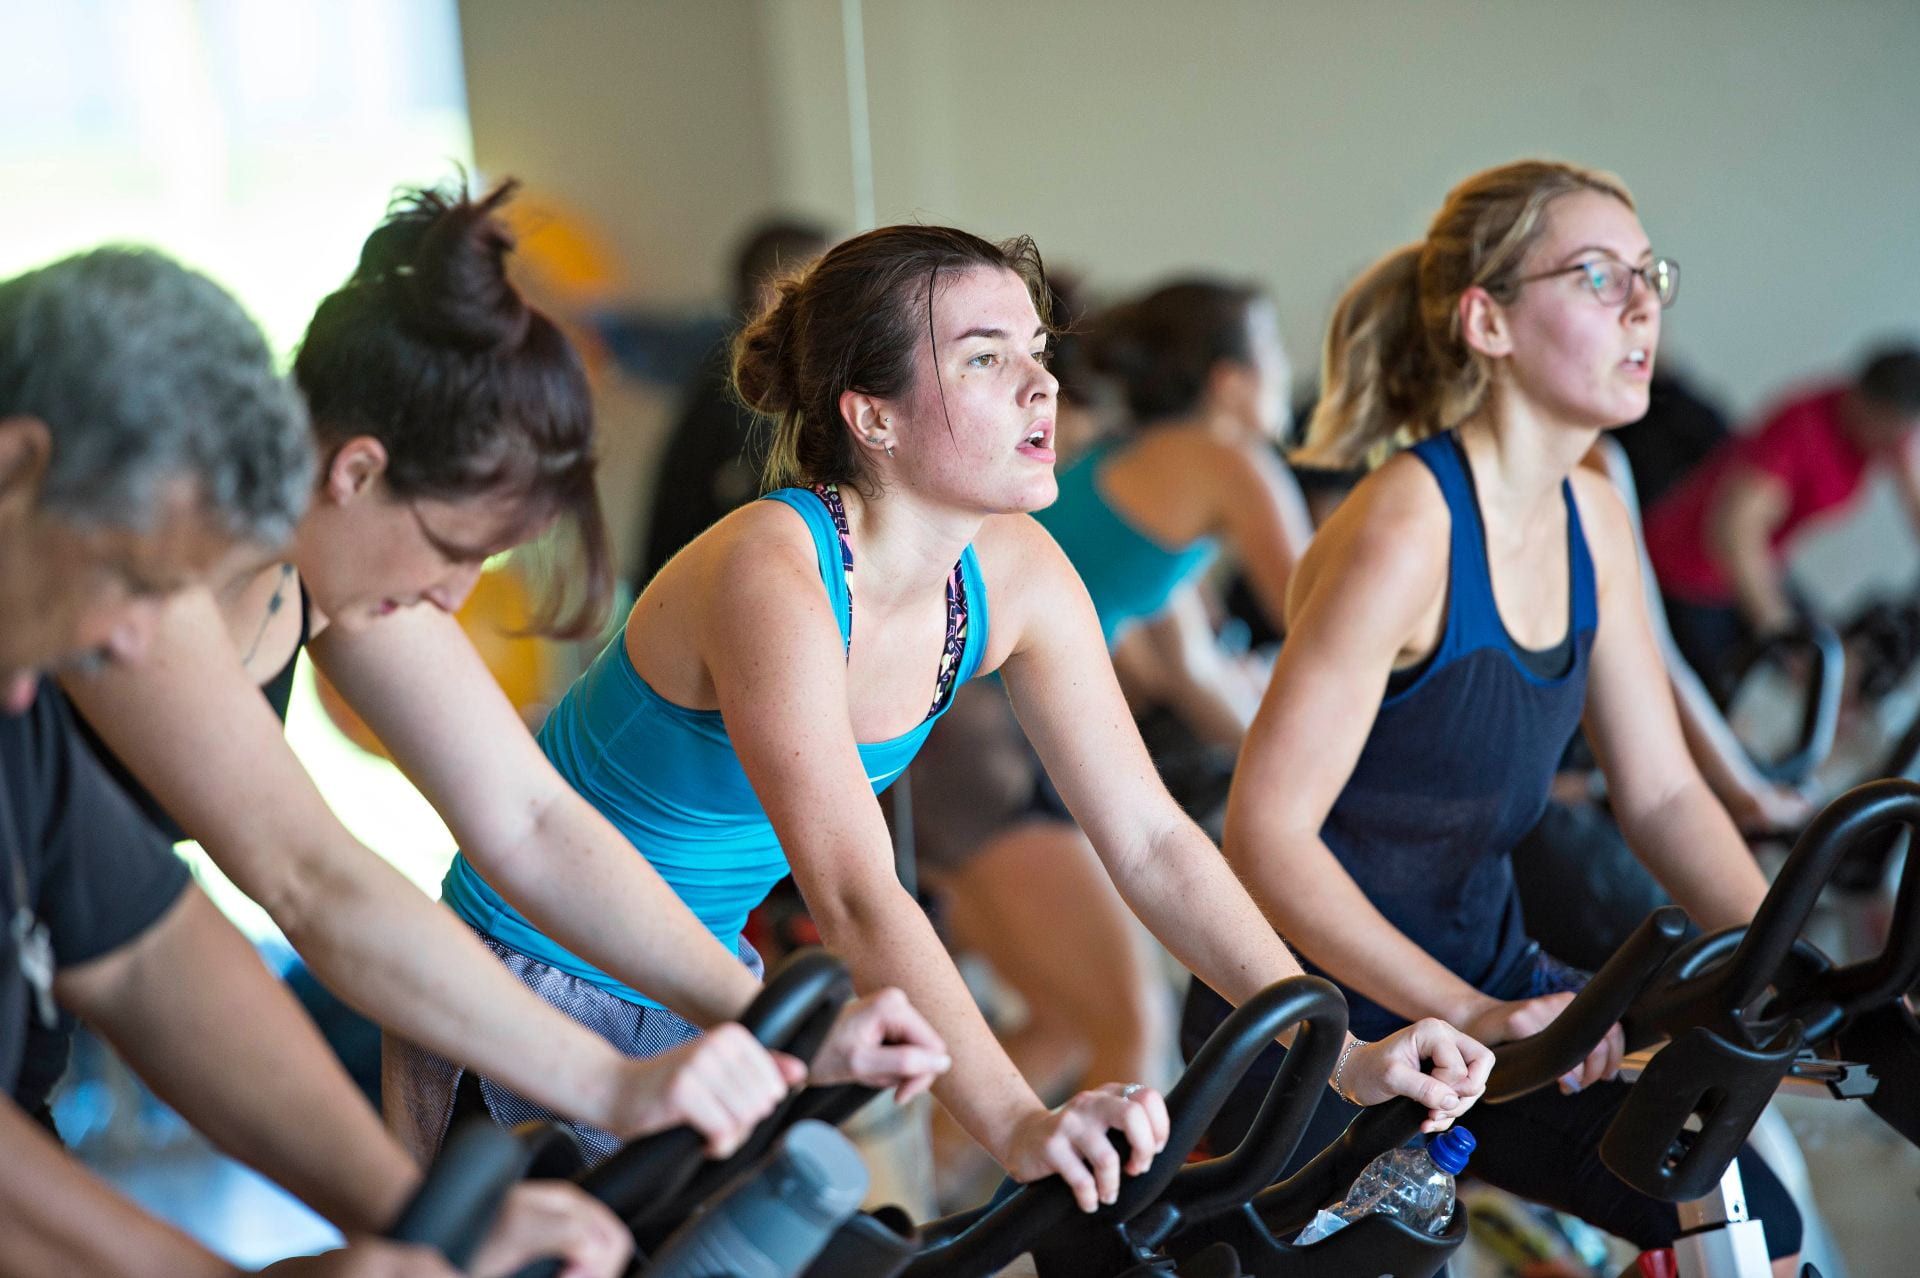 People on cycle machines in a gym.